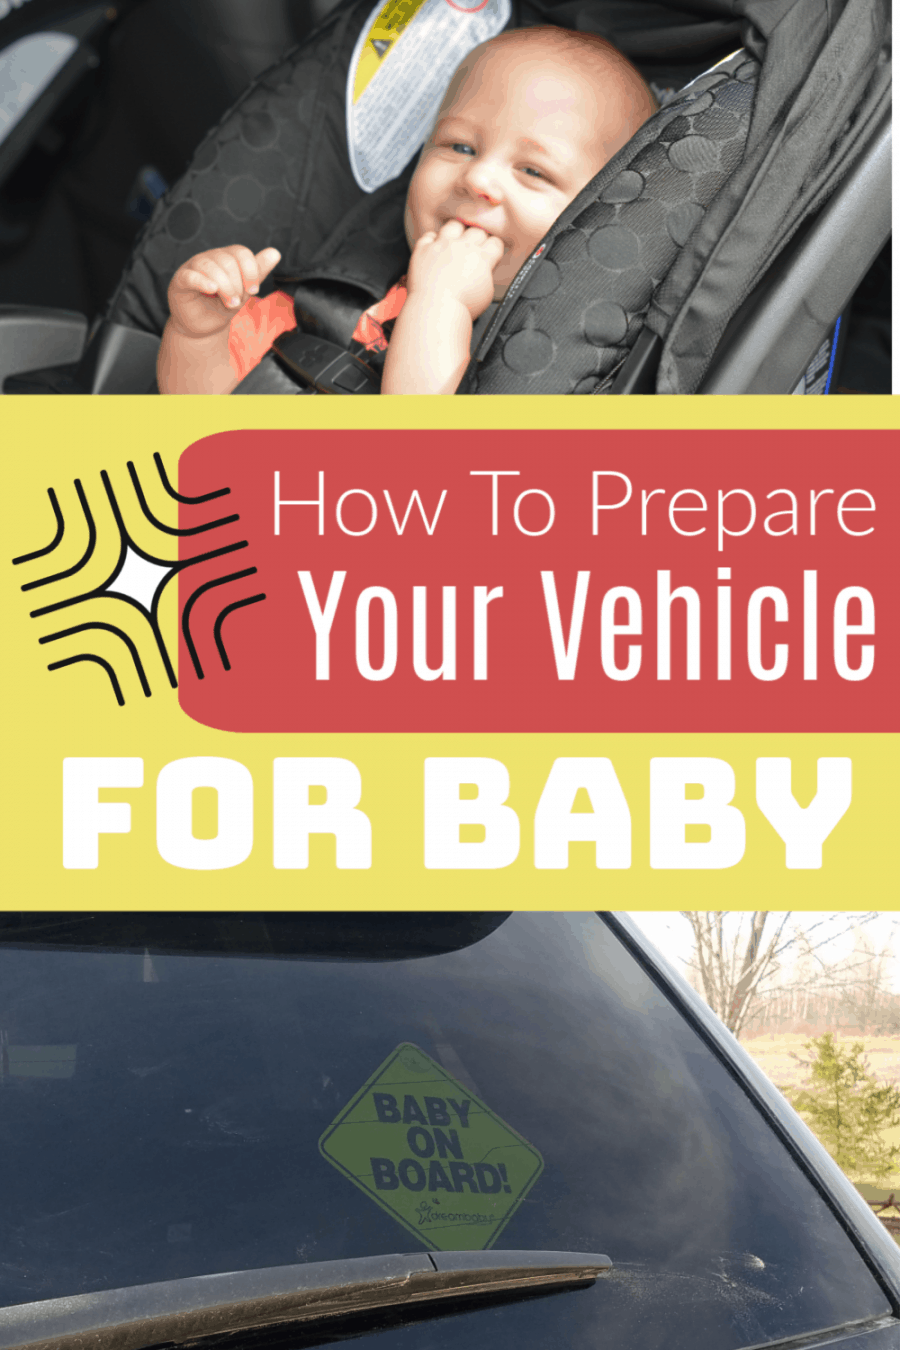 How to prepre your vehicle for baby